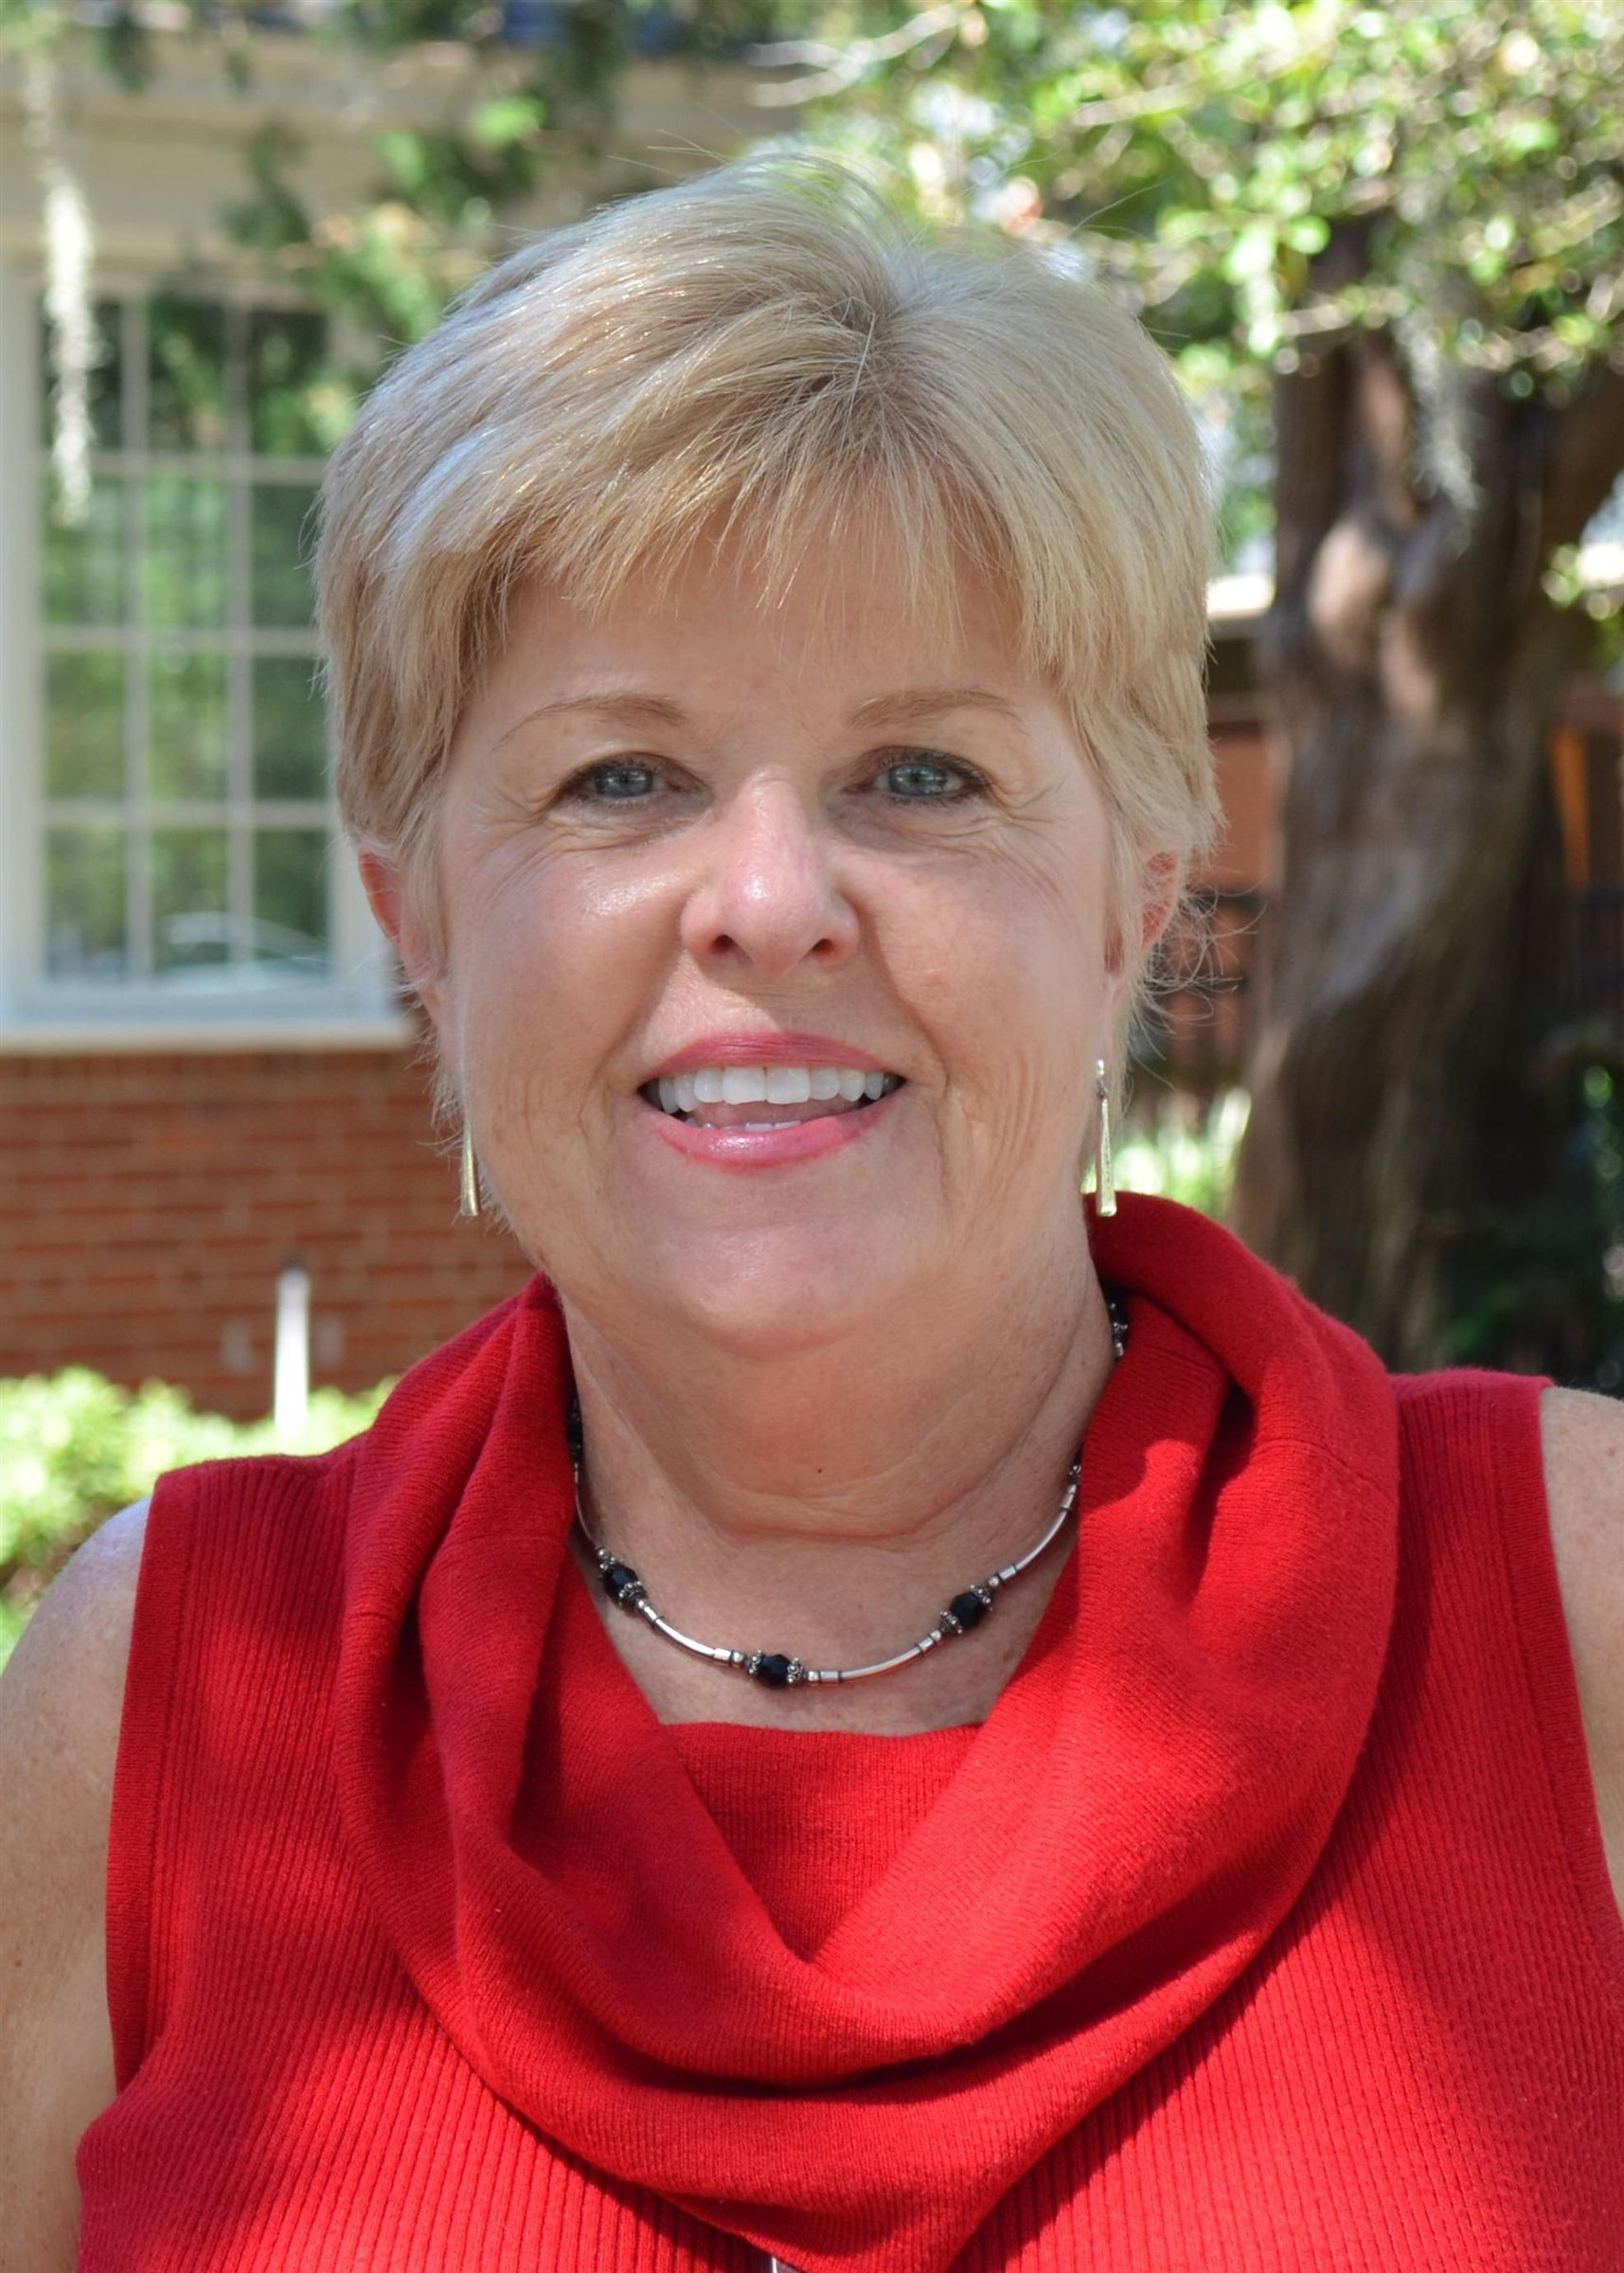 Susan Kwartler, Director of Development